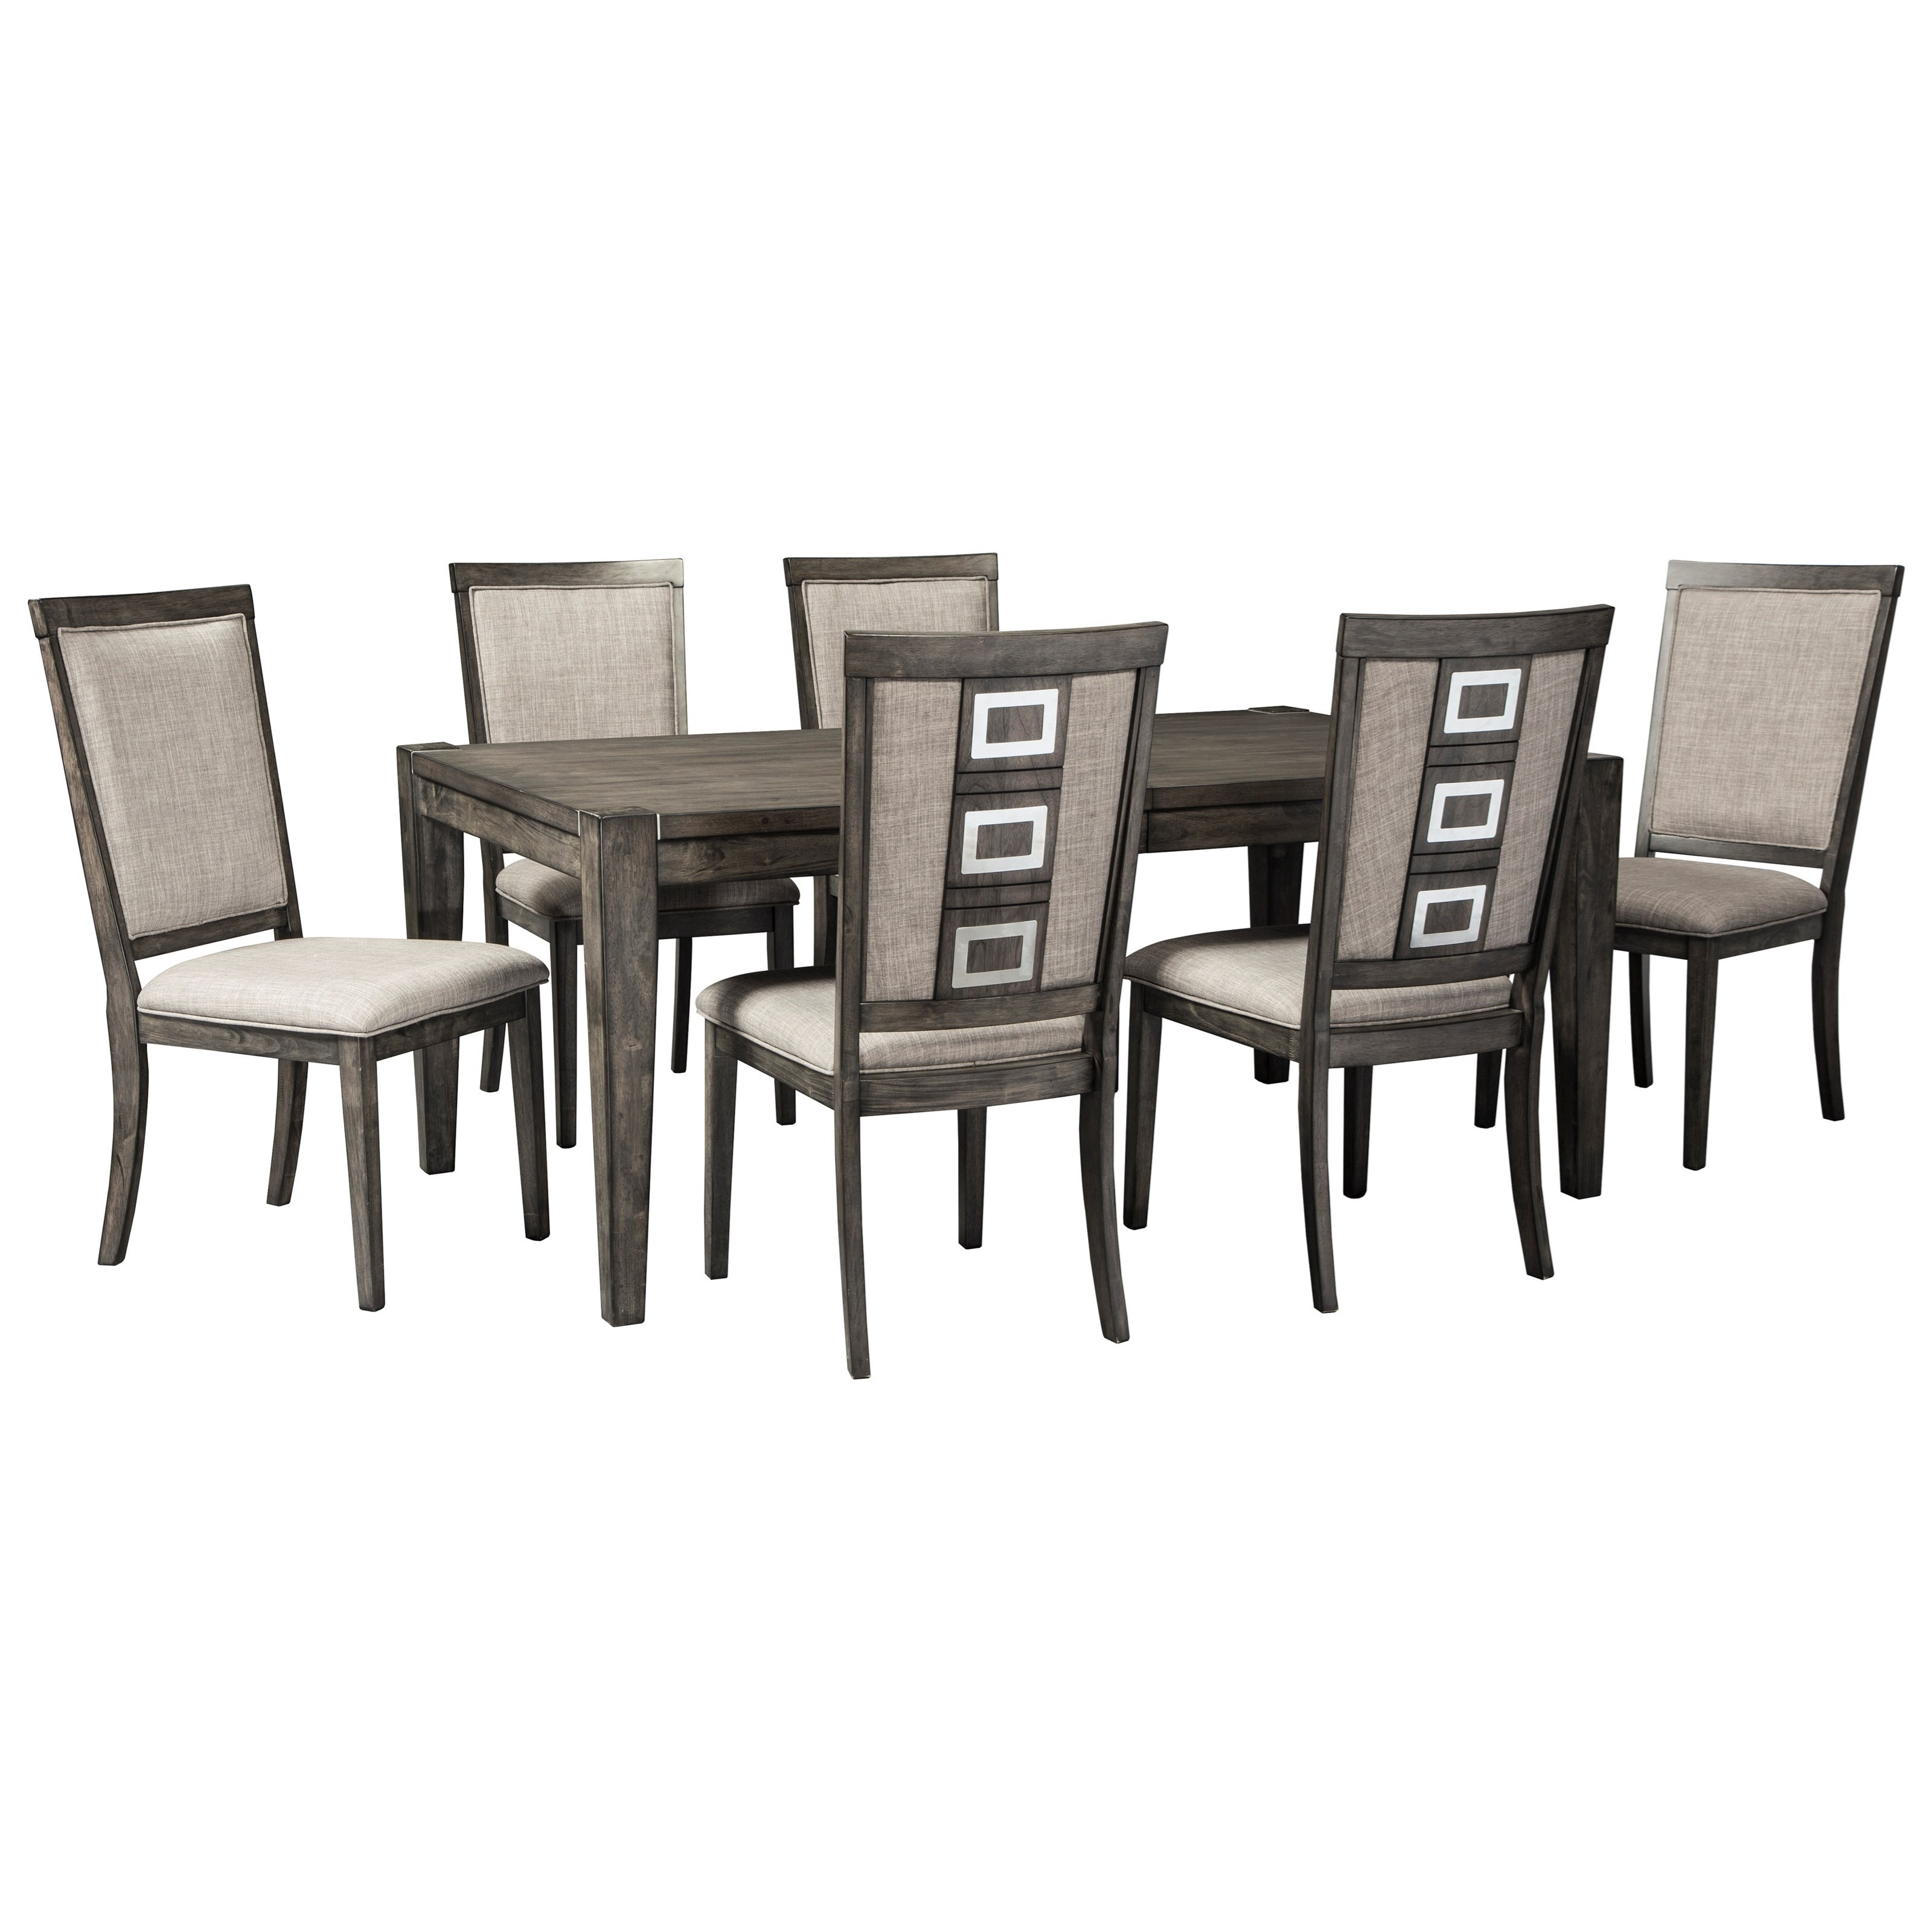 Ashley S Nest Decorating A Dining Room: Del Sol AS Chadoni Formal Dining Room Group